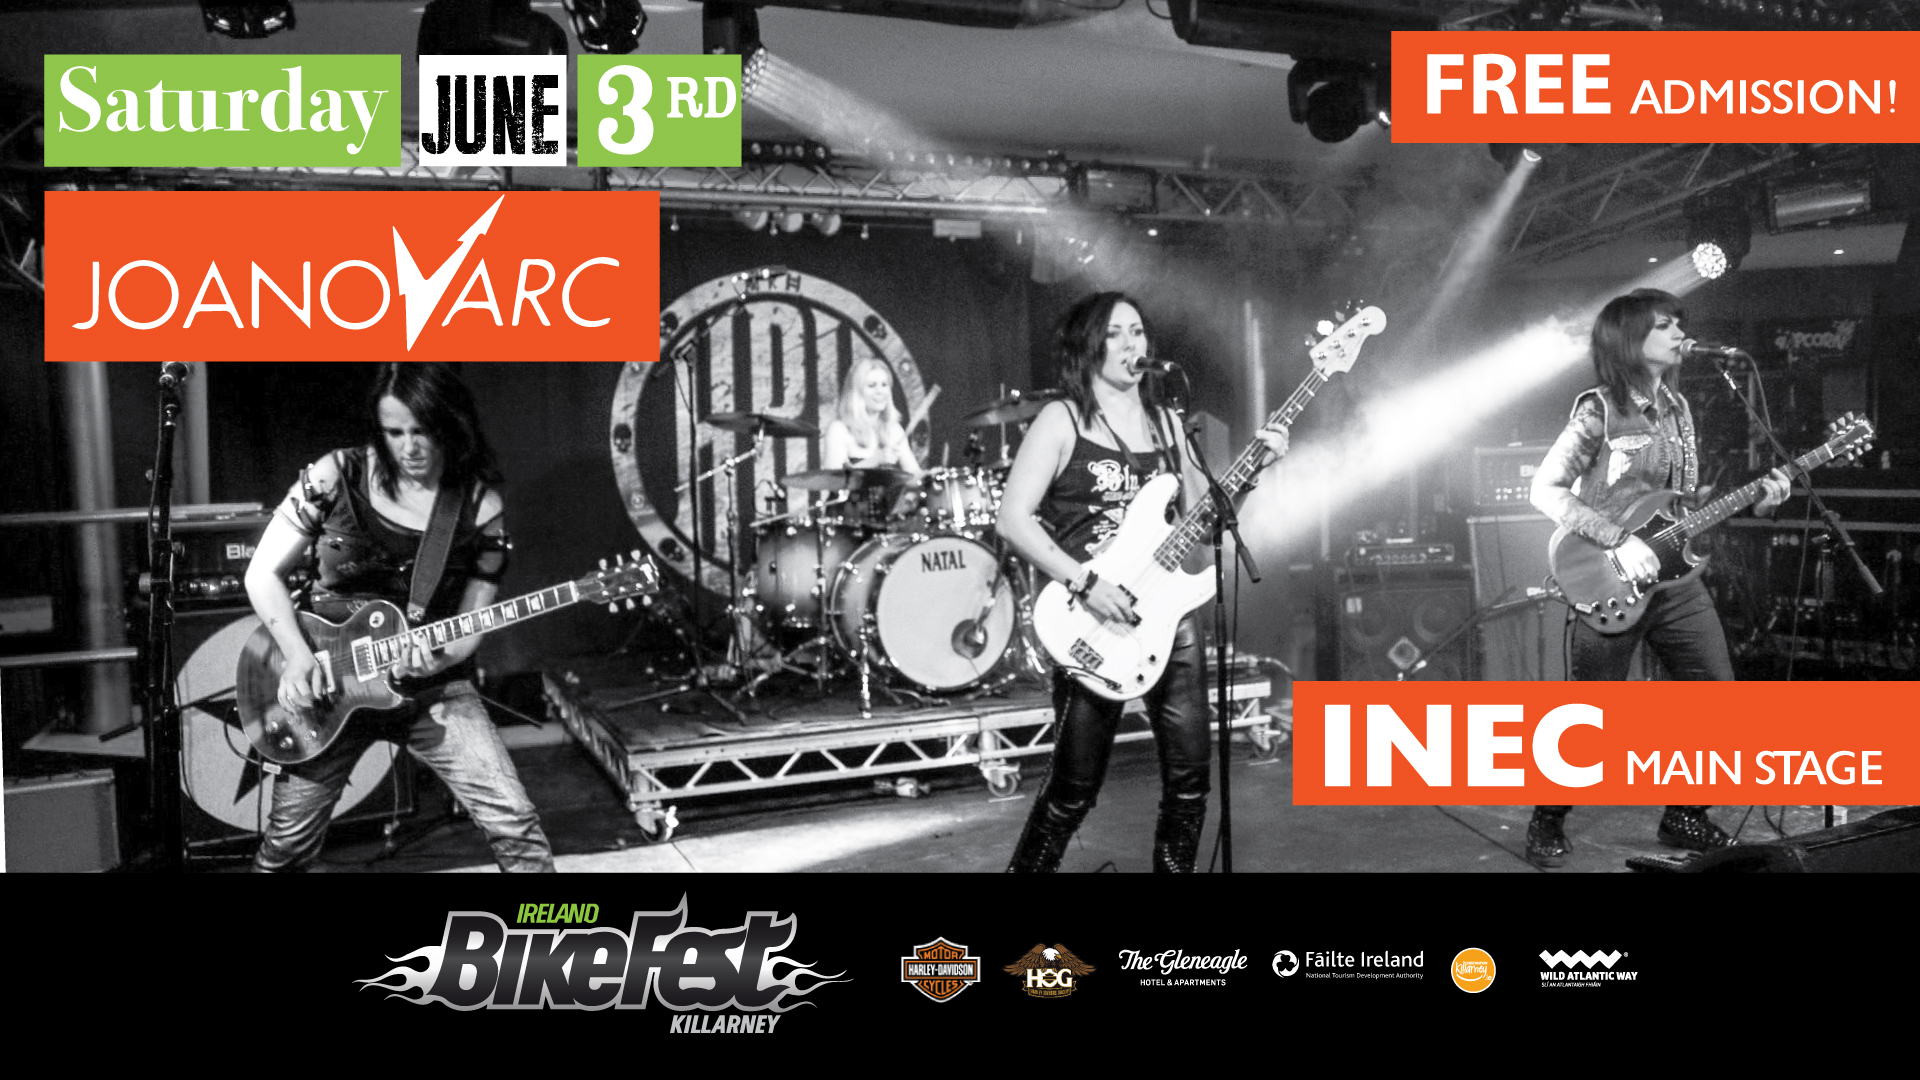 Ireland-BikeFest-Entertainment-Screen-JoanovArc-Saturday-3rd-June-1920-1080